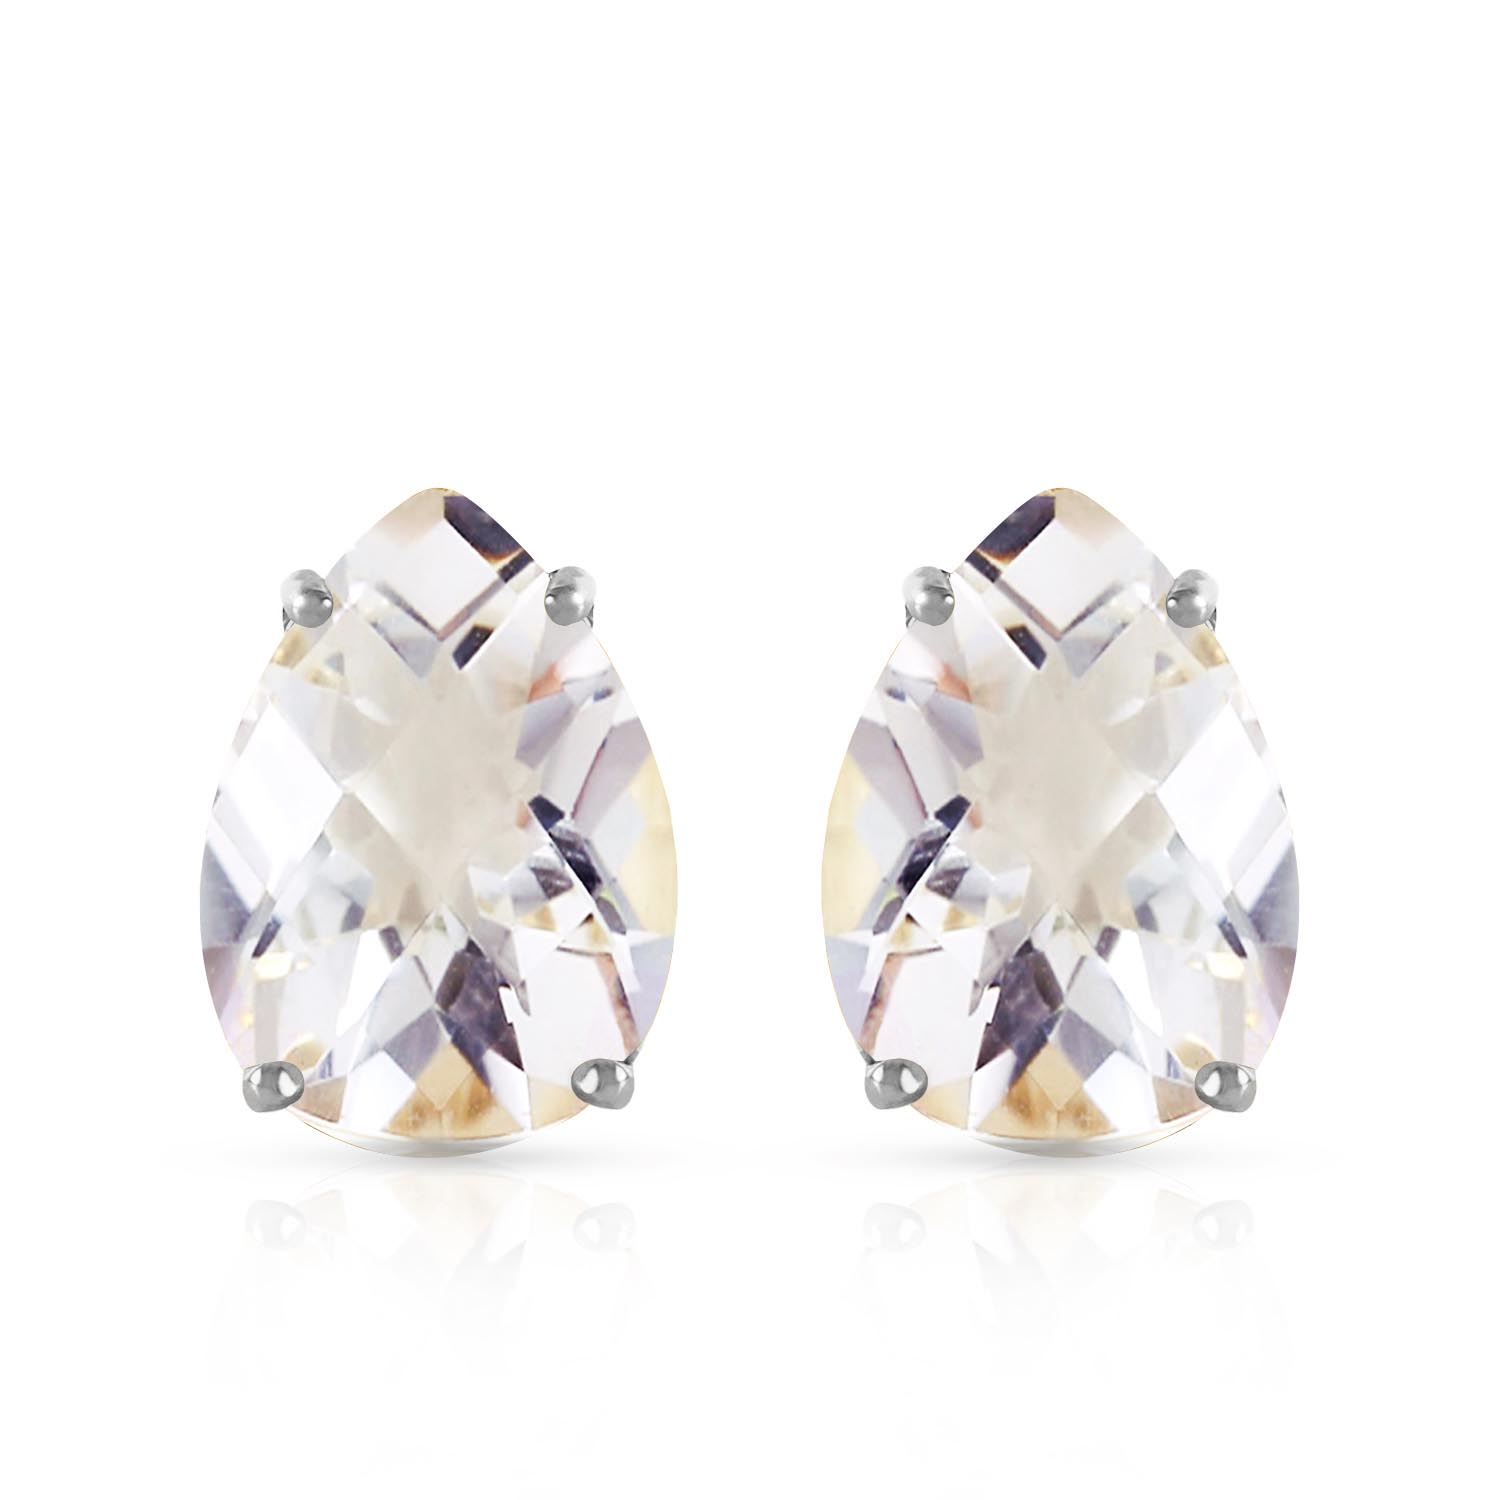 White Topaz Droplet Stud Earrings 10.0ctw in 9ct White Gold